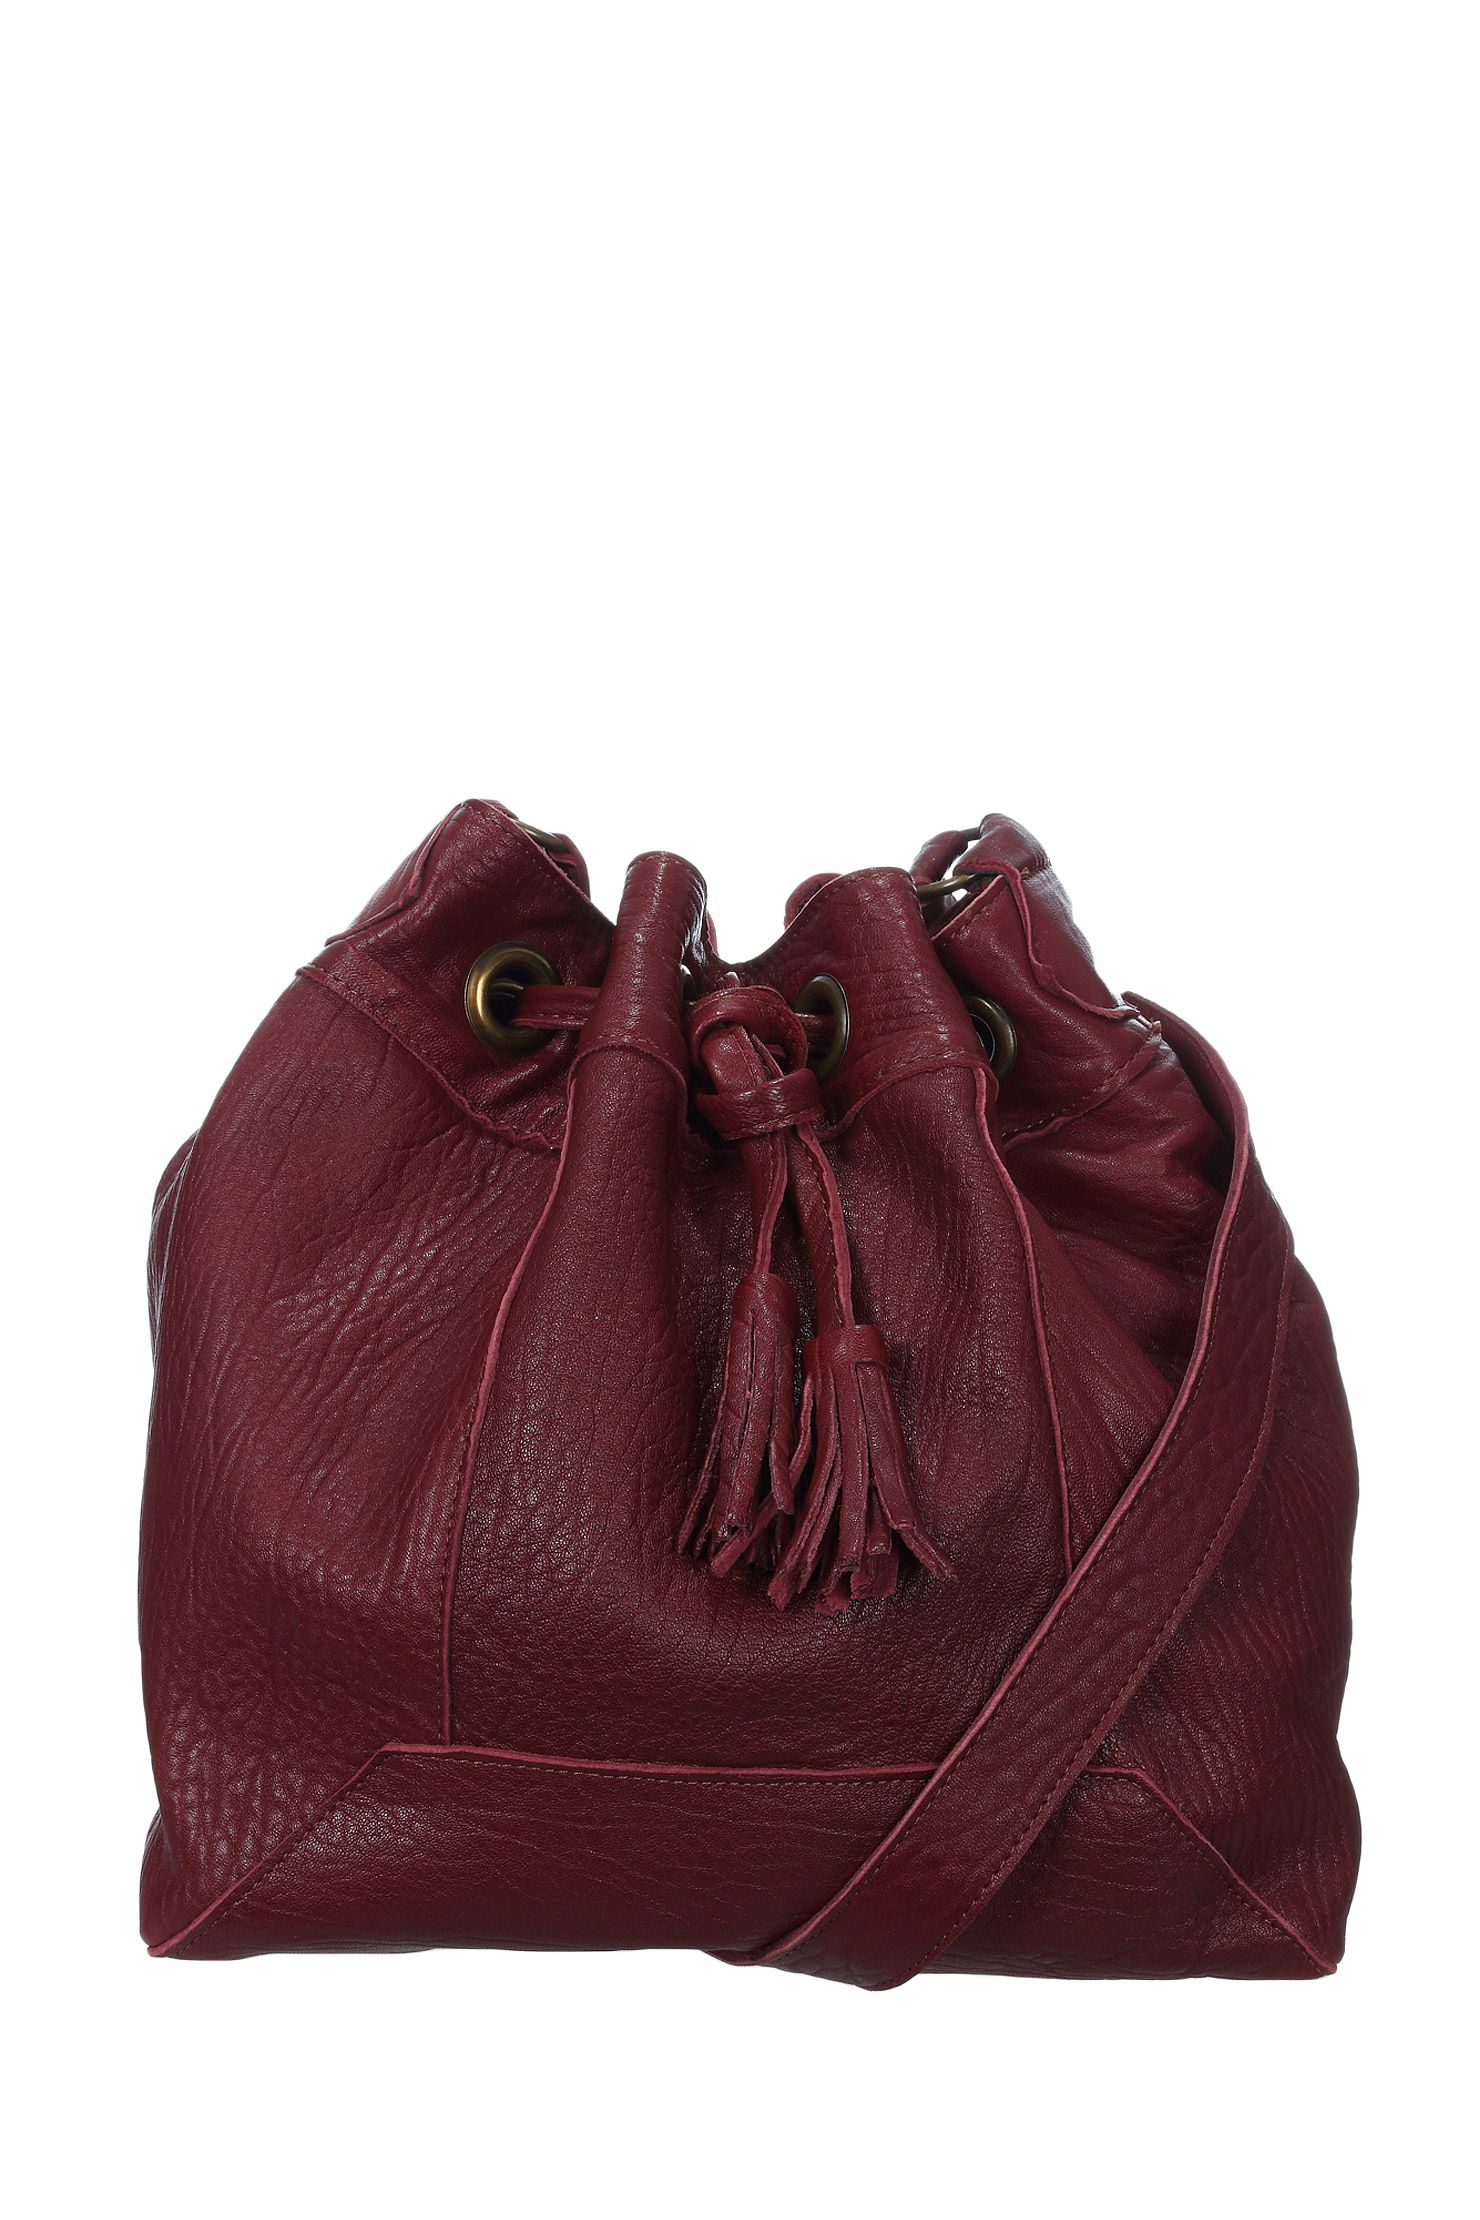 8093d1635a38a Sac boule en cuir bubble Lola Made in France Bordeaux Créations Sacs Mary  sur MonShowroom.com